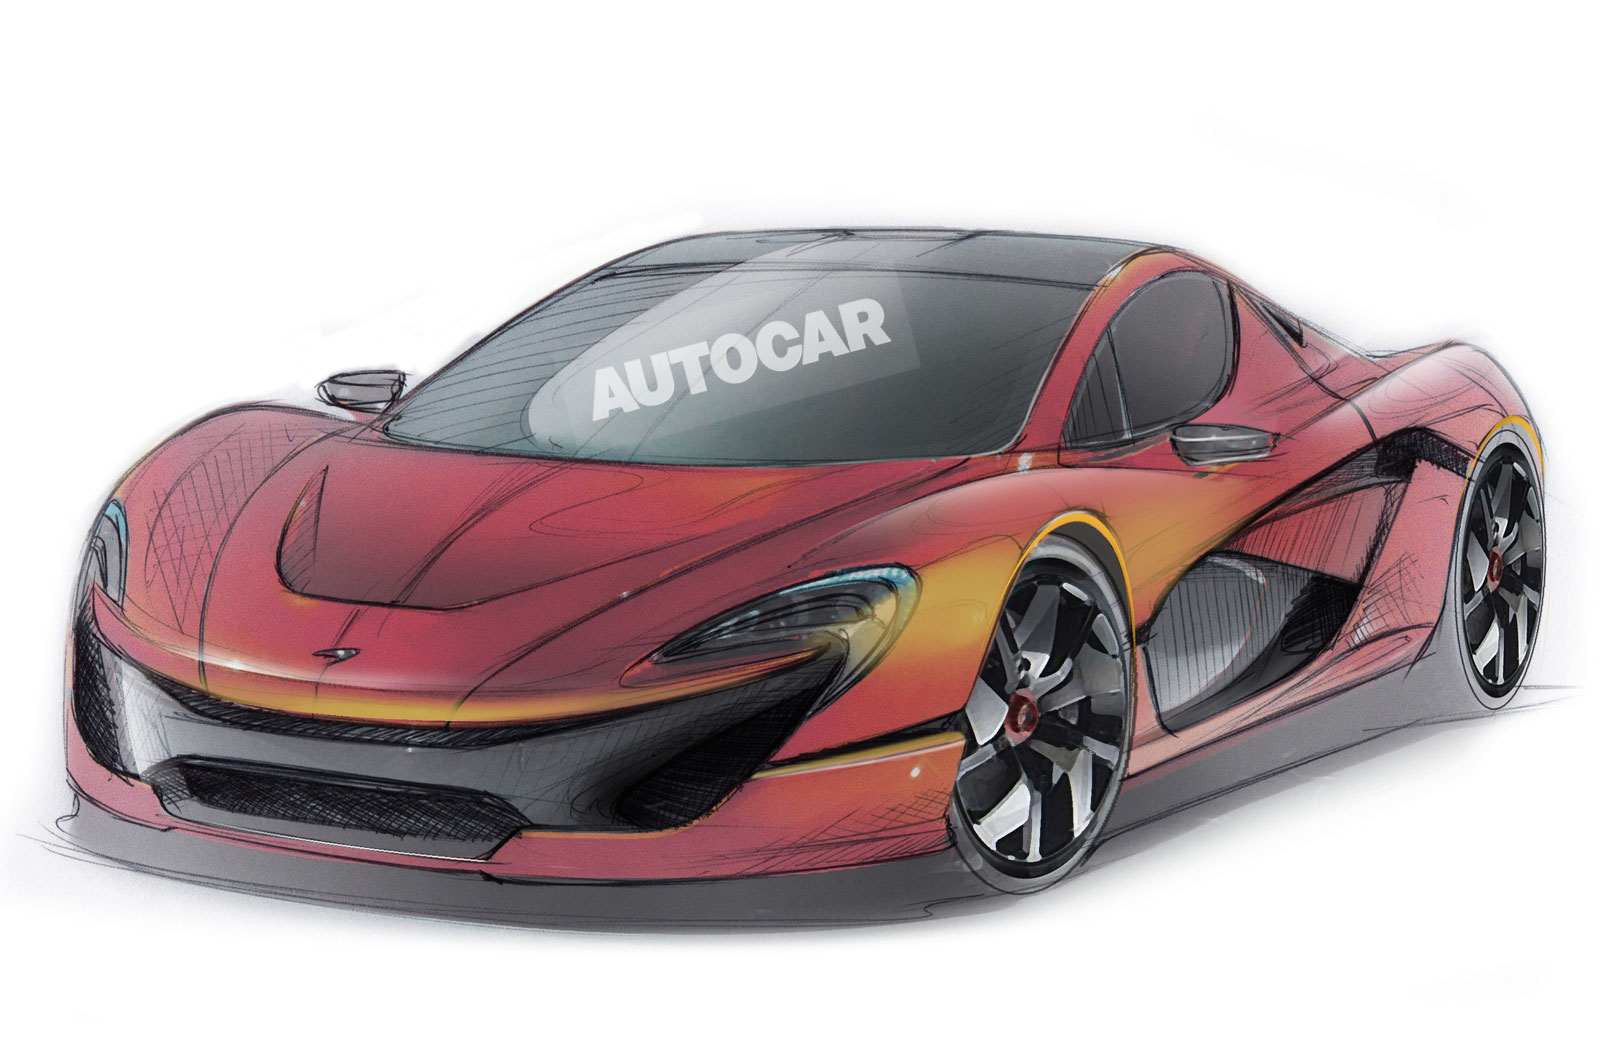 new 163400k mclaren p15 supercar confirmed autocar